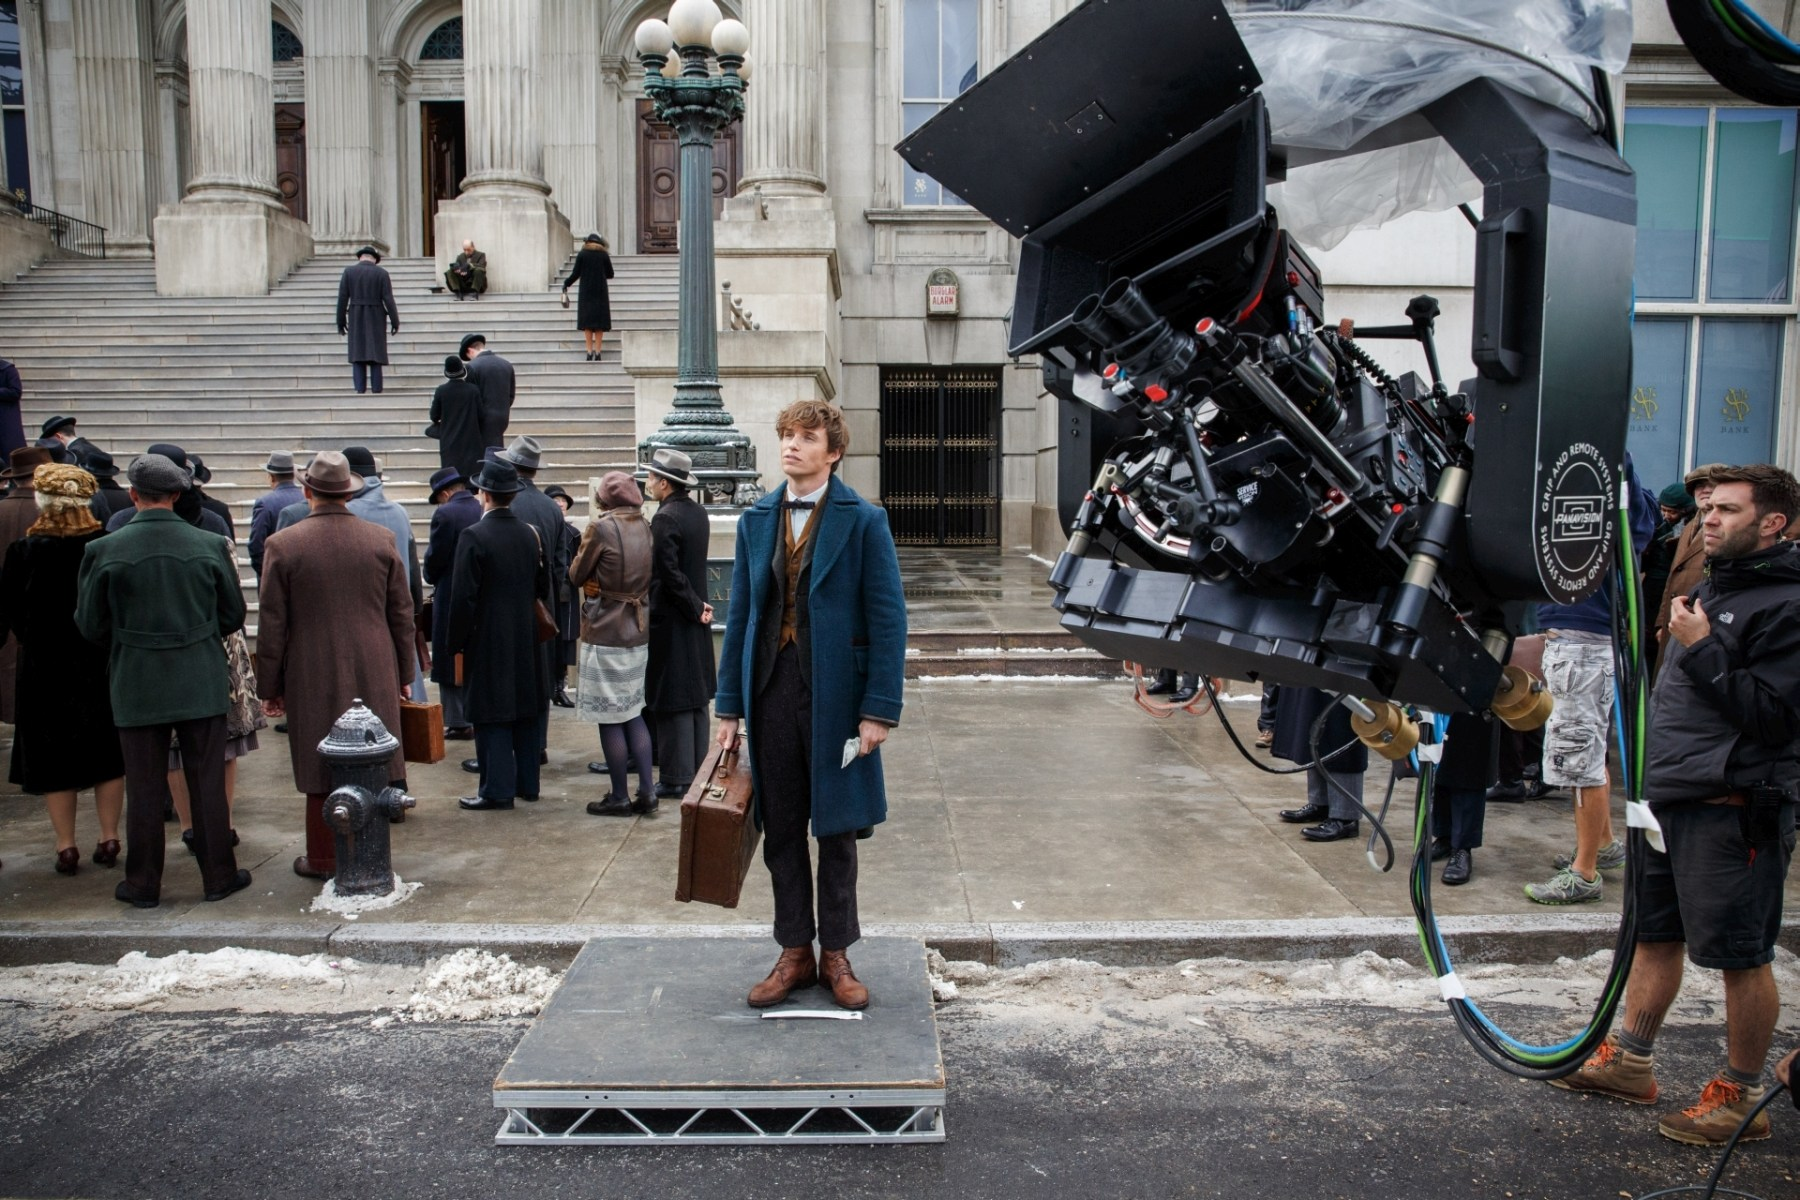 Eddie Redmayne as Newt Scamander Behind the Scenes